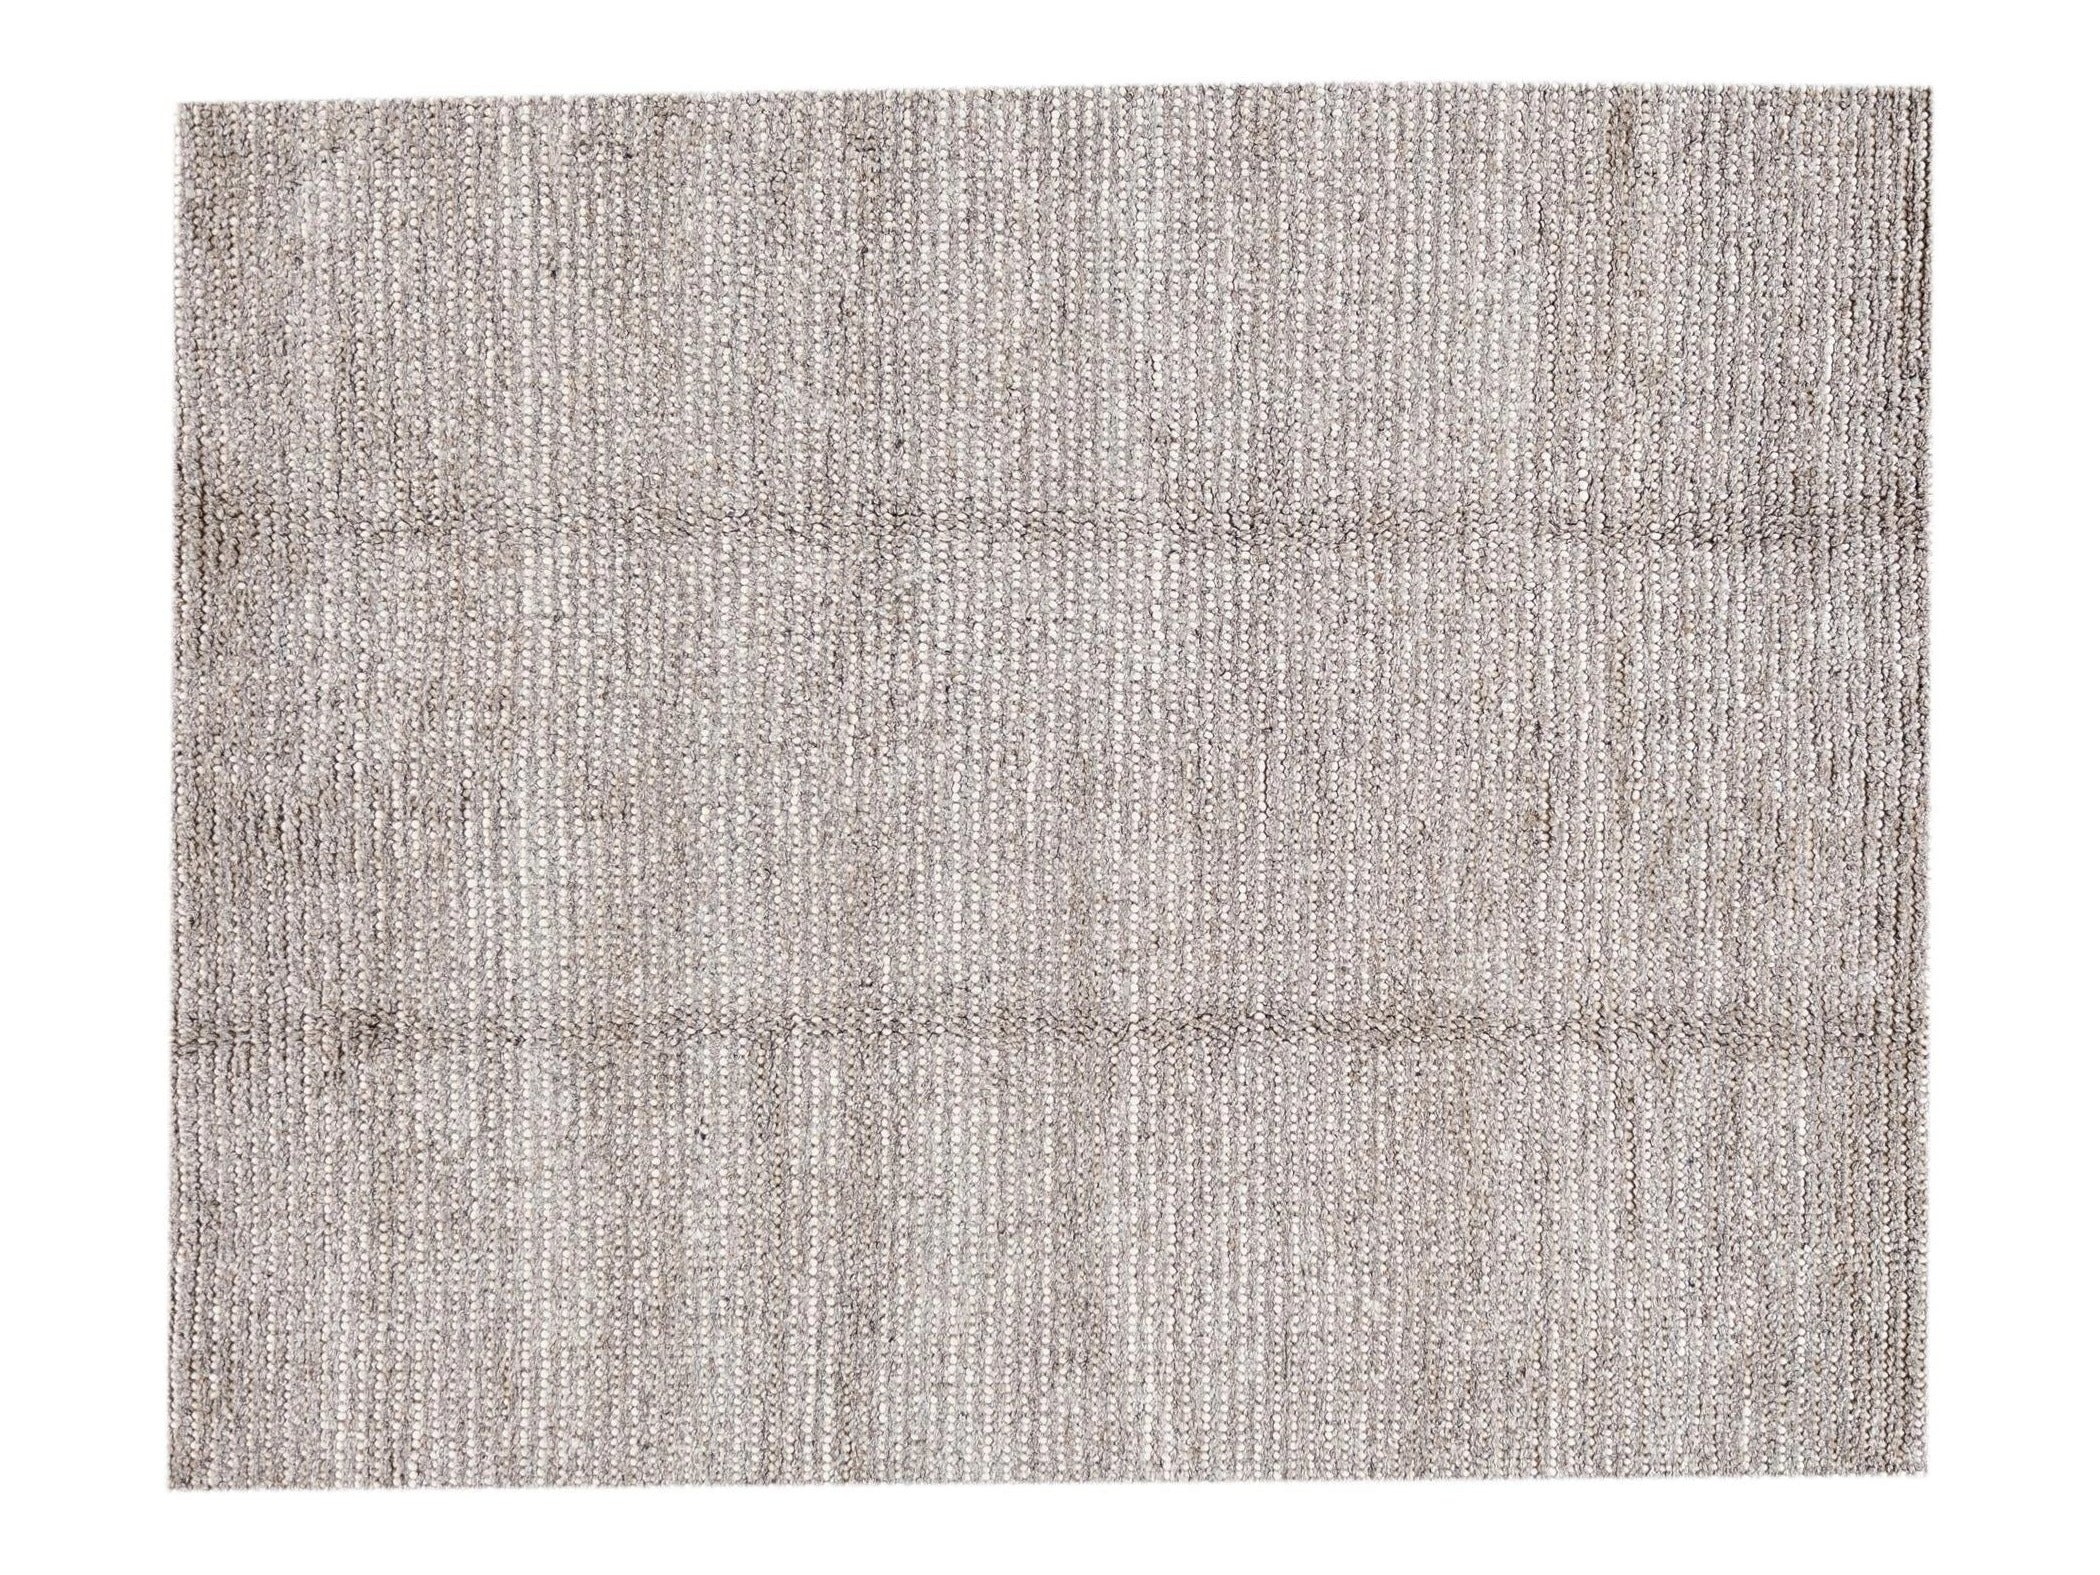 21st Century Contemporary Textured Wool Rug 8' x 10'